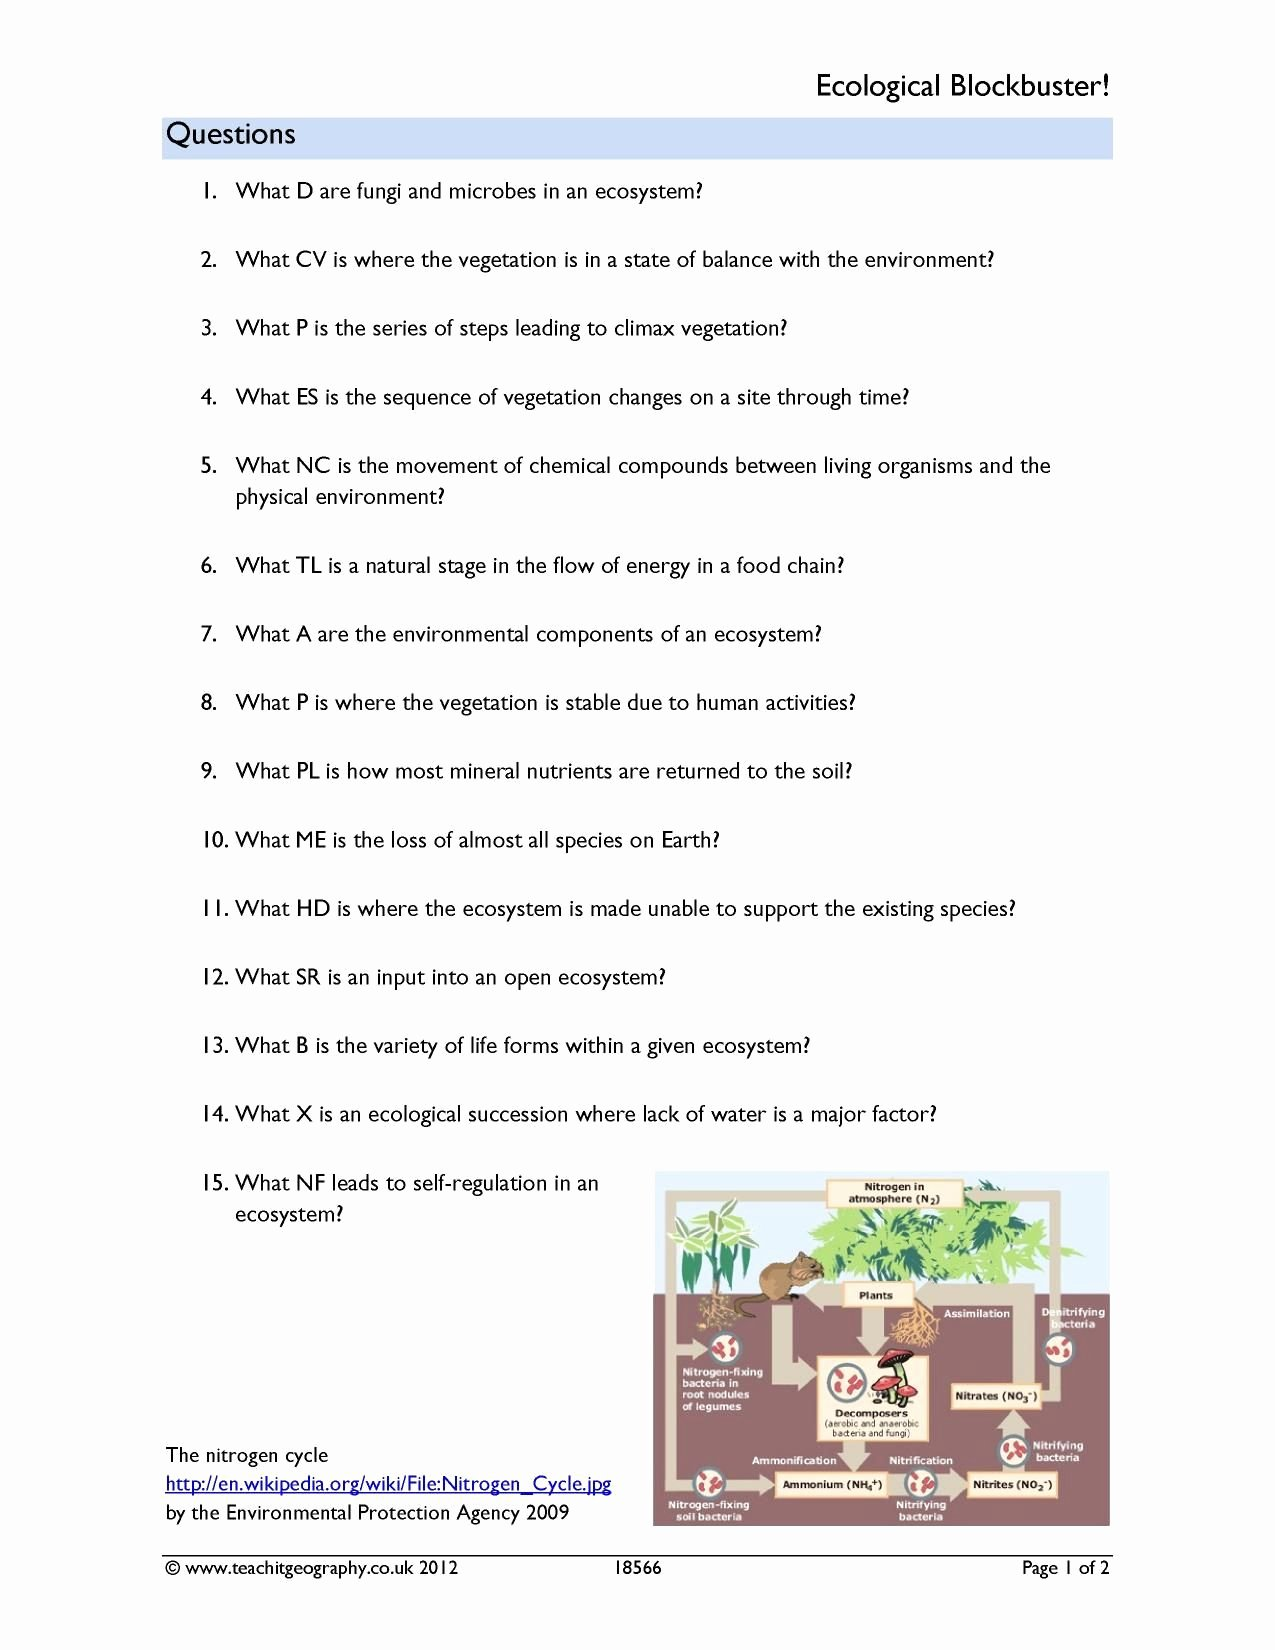 Ecological Succession Worksheet Answer Key Luxury Ecological Succession Worksheet Answer Key